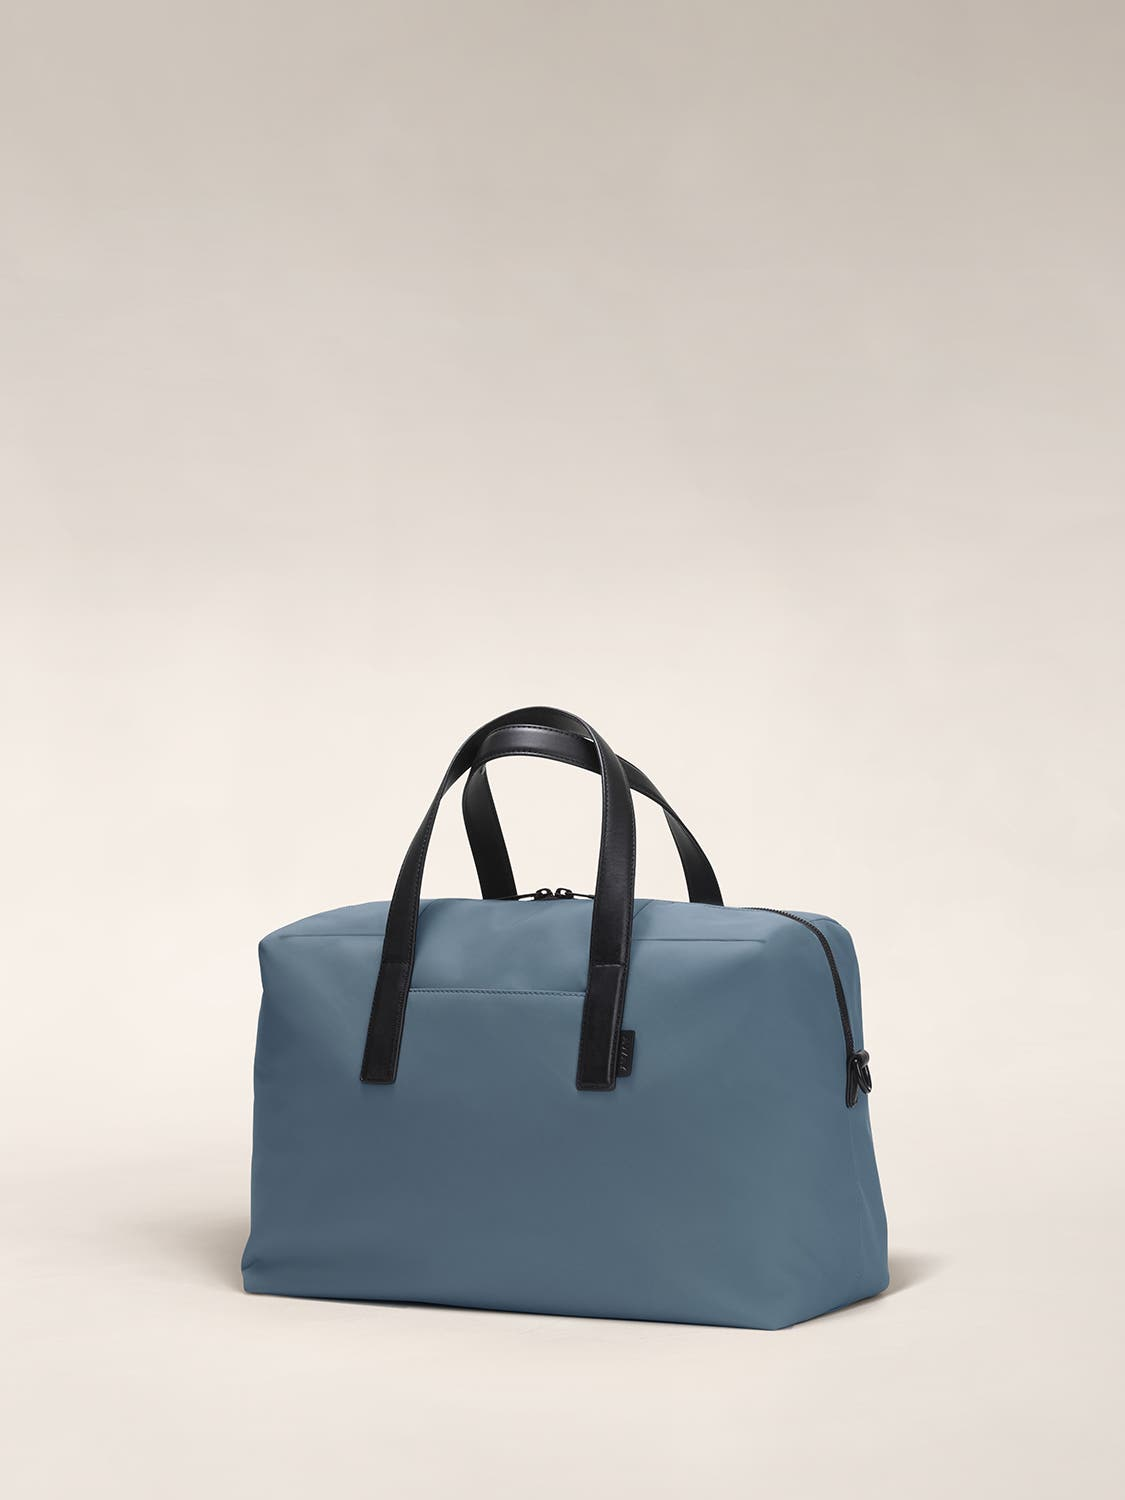 Angled view of a coast blue duffle bag with crossed straps.